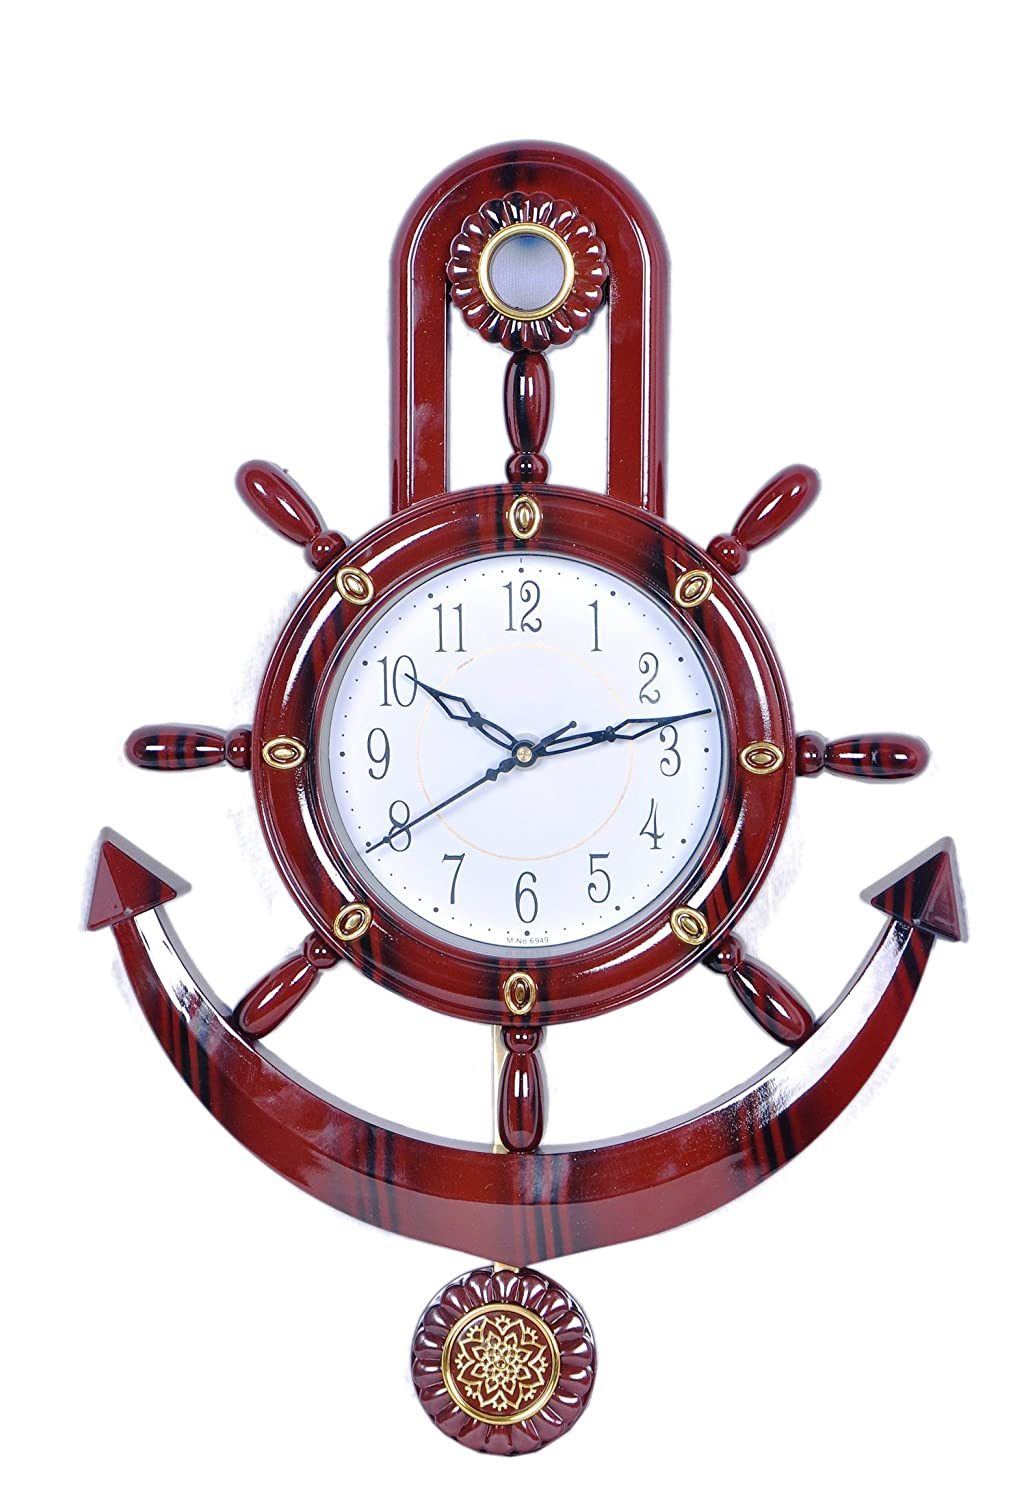 Unique Wall Clocks Cheap Antique Designer Wall Clocks Starts At Rs 499 Lowest Price